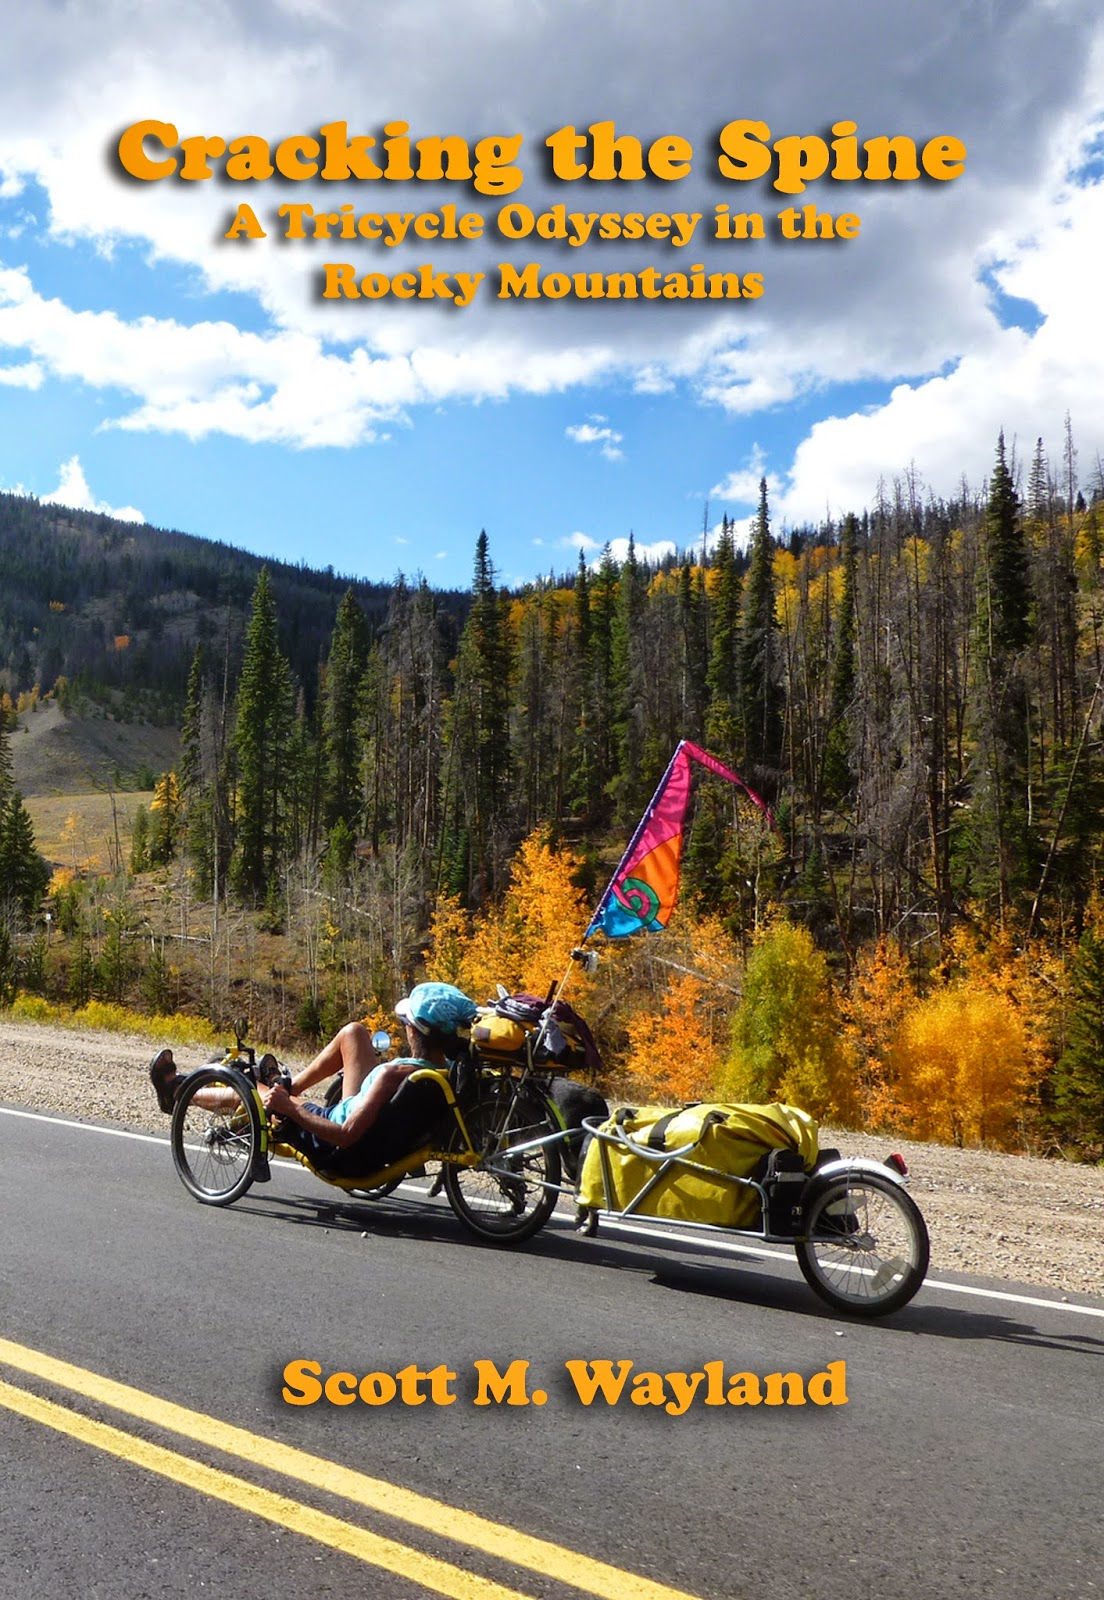 http://www.amazon.com/Cracking-Spine-Tricycle-Odyssey-Mountains-ebook/dp/B00LBCHGTO/ref=sr_1_1?s=digital-text&ie=UTF8&qid=1405429131&sr=1-1&keywords=cracking+the+spine